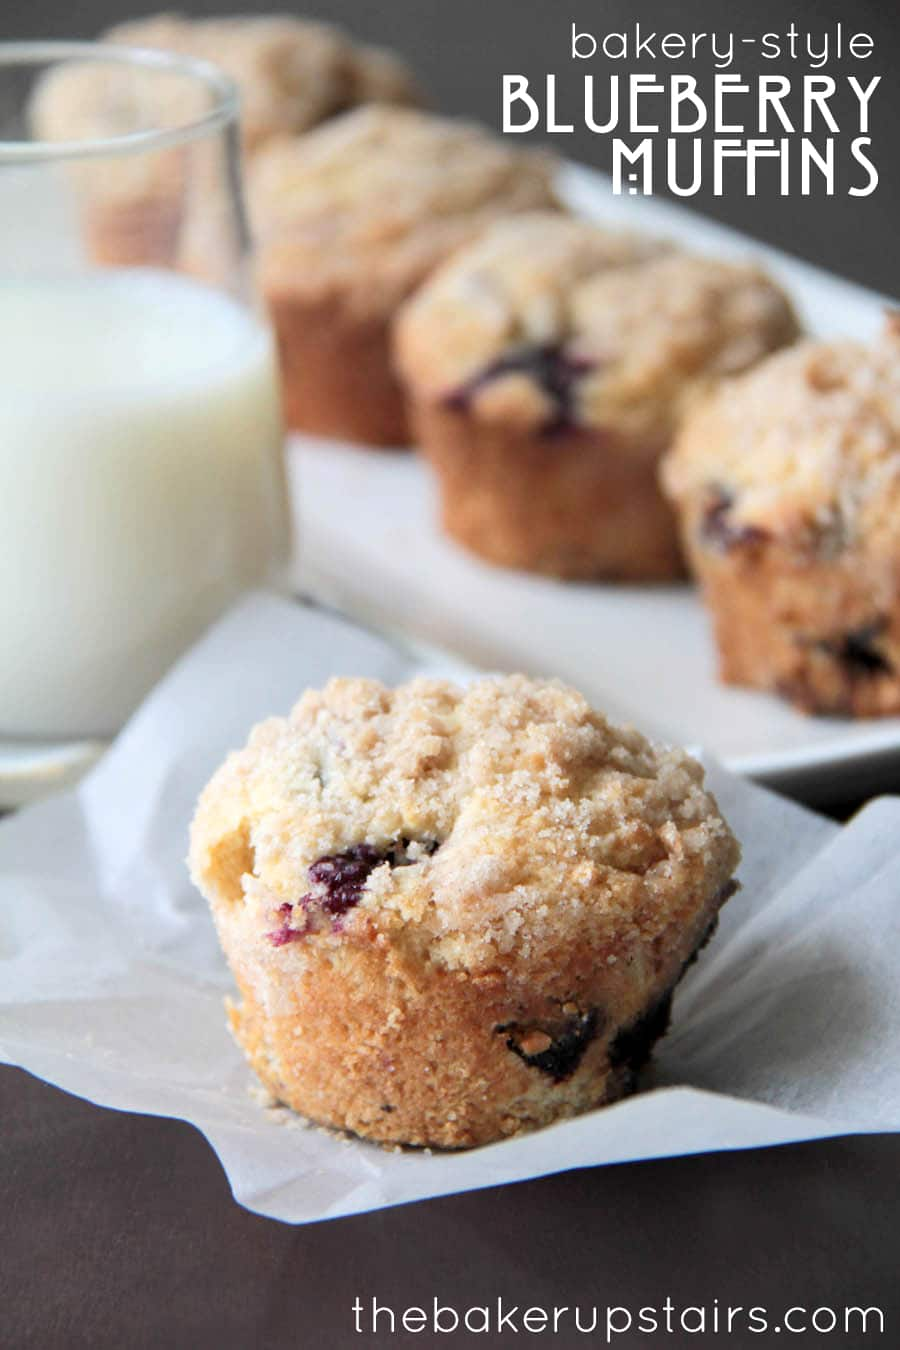 Blueberry muffins on a paper and tray